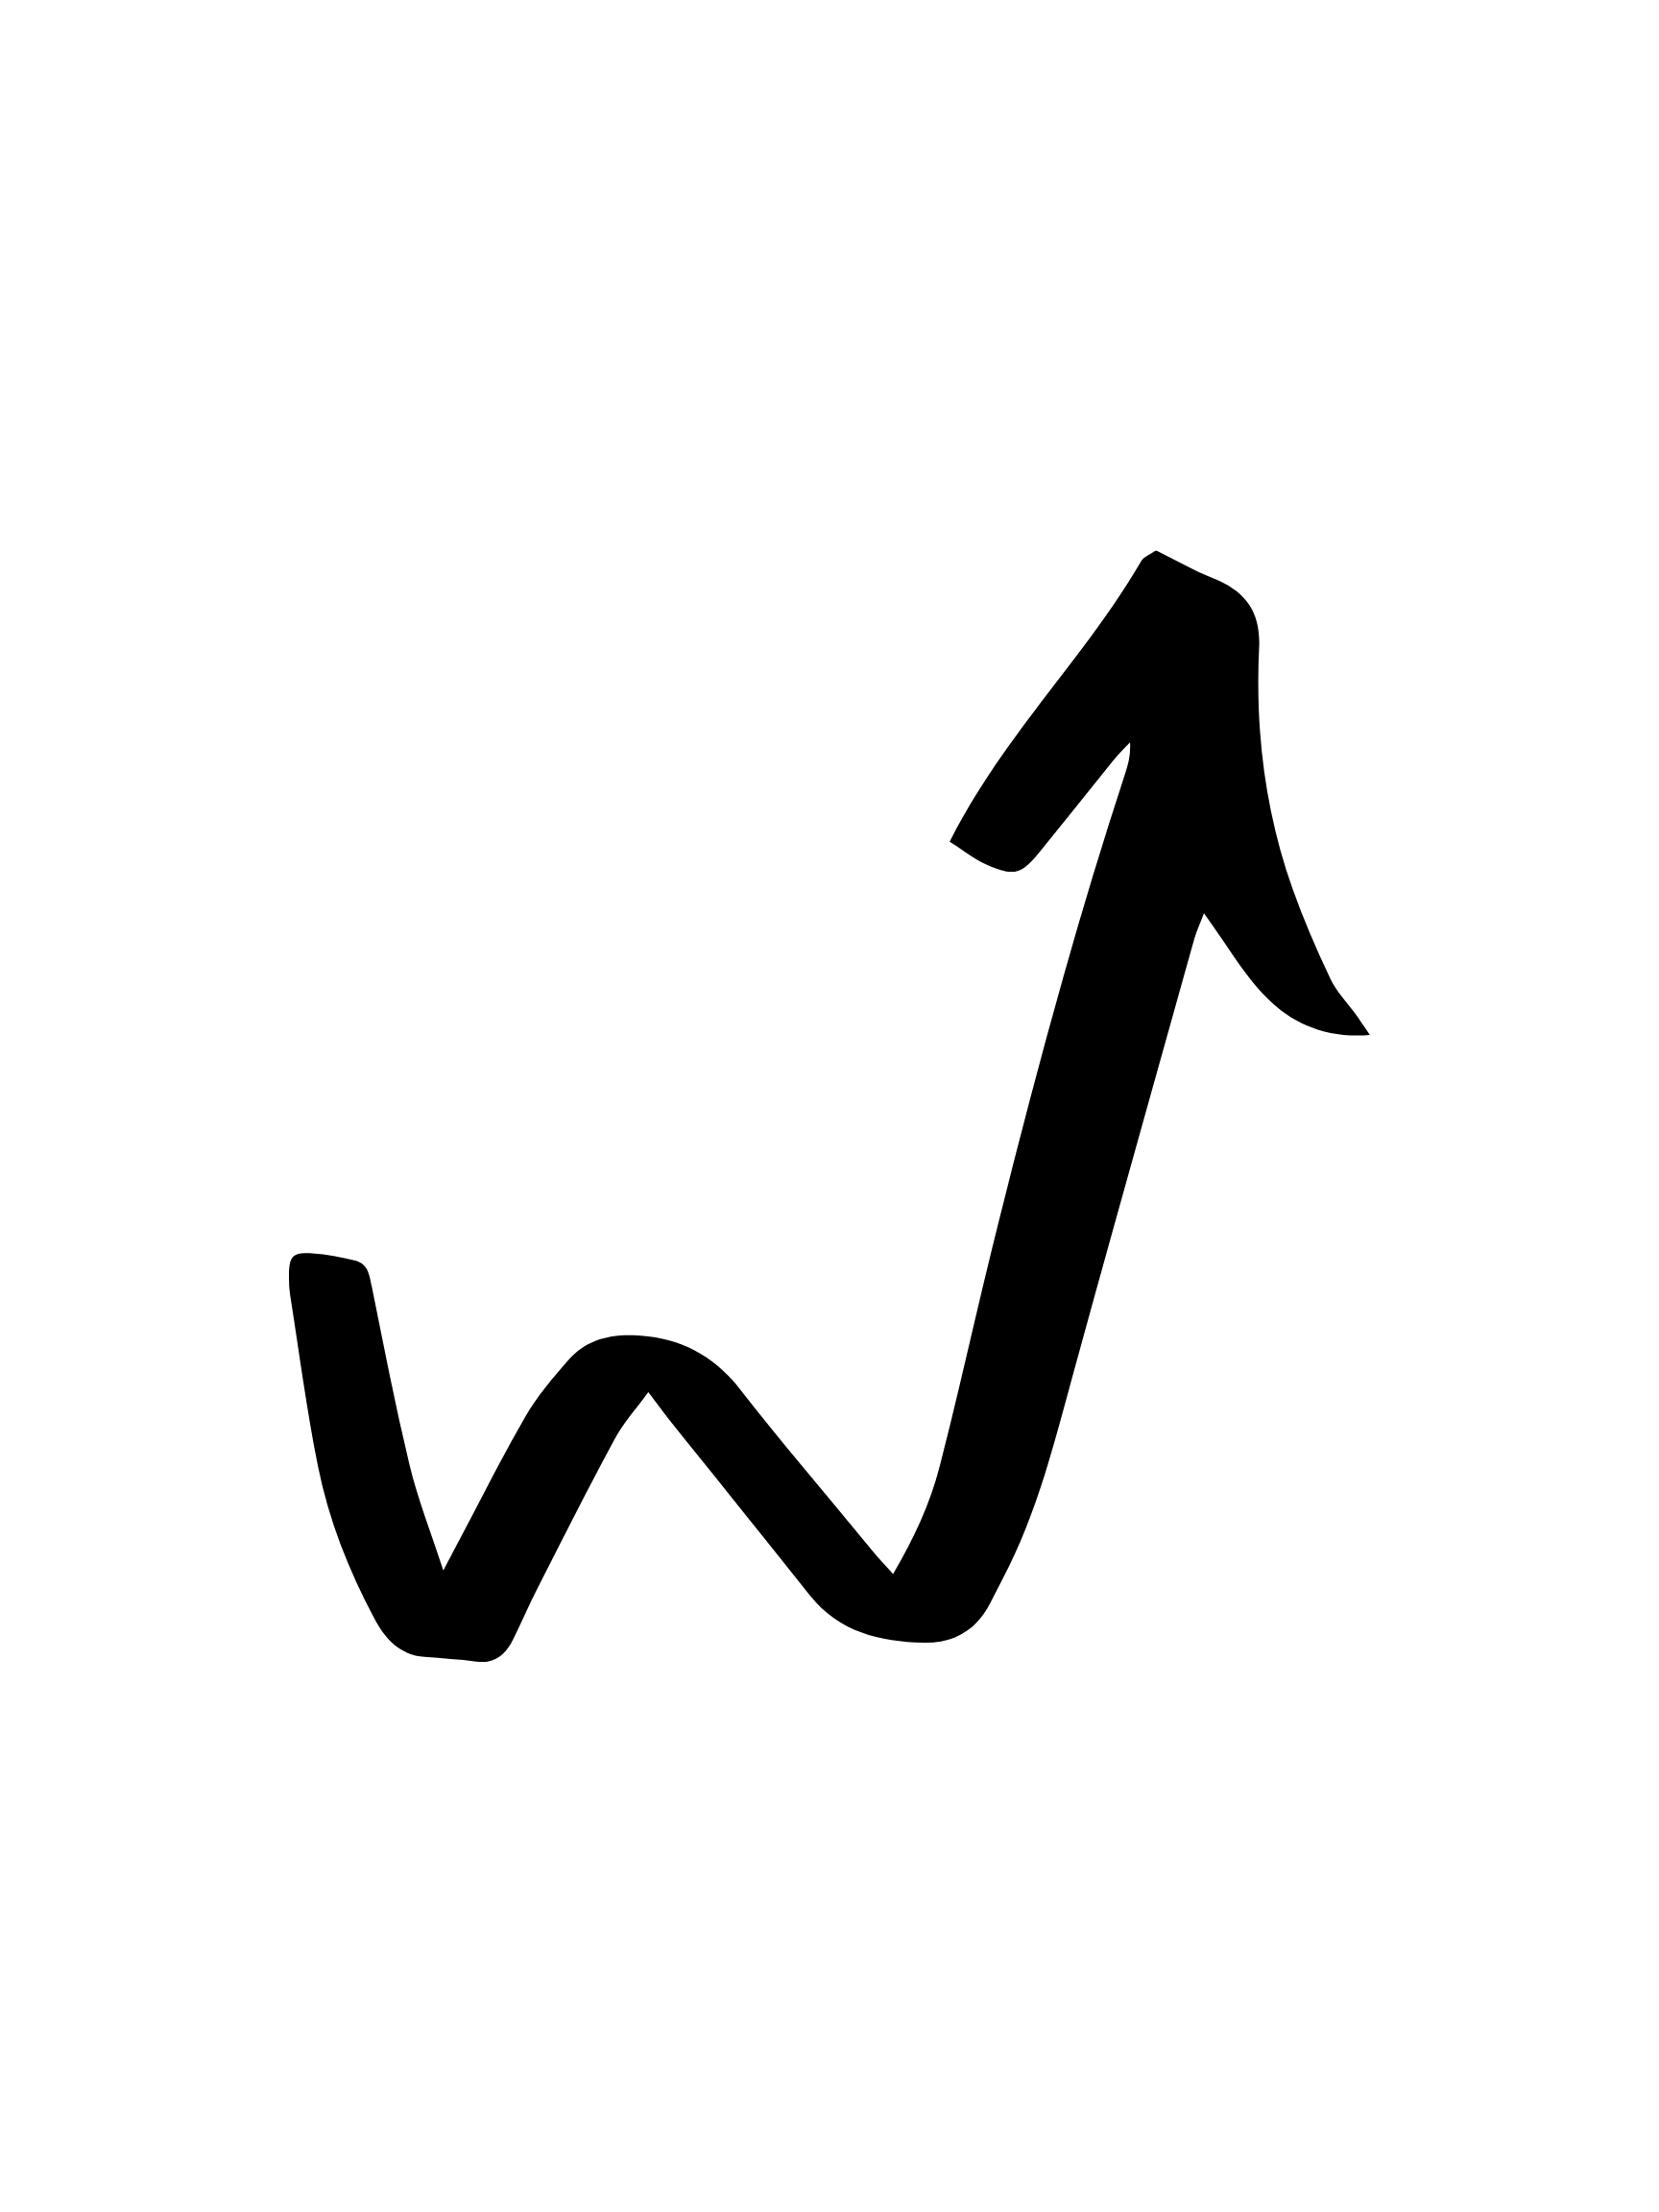 Icon of arrow showing an increase